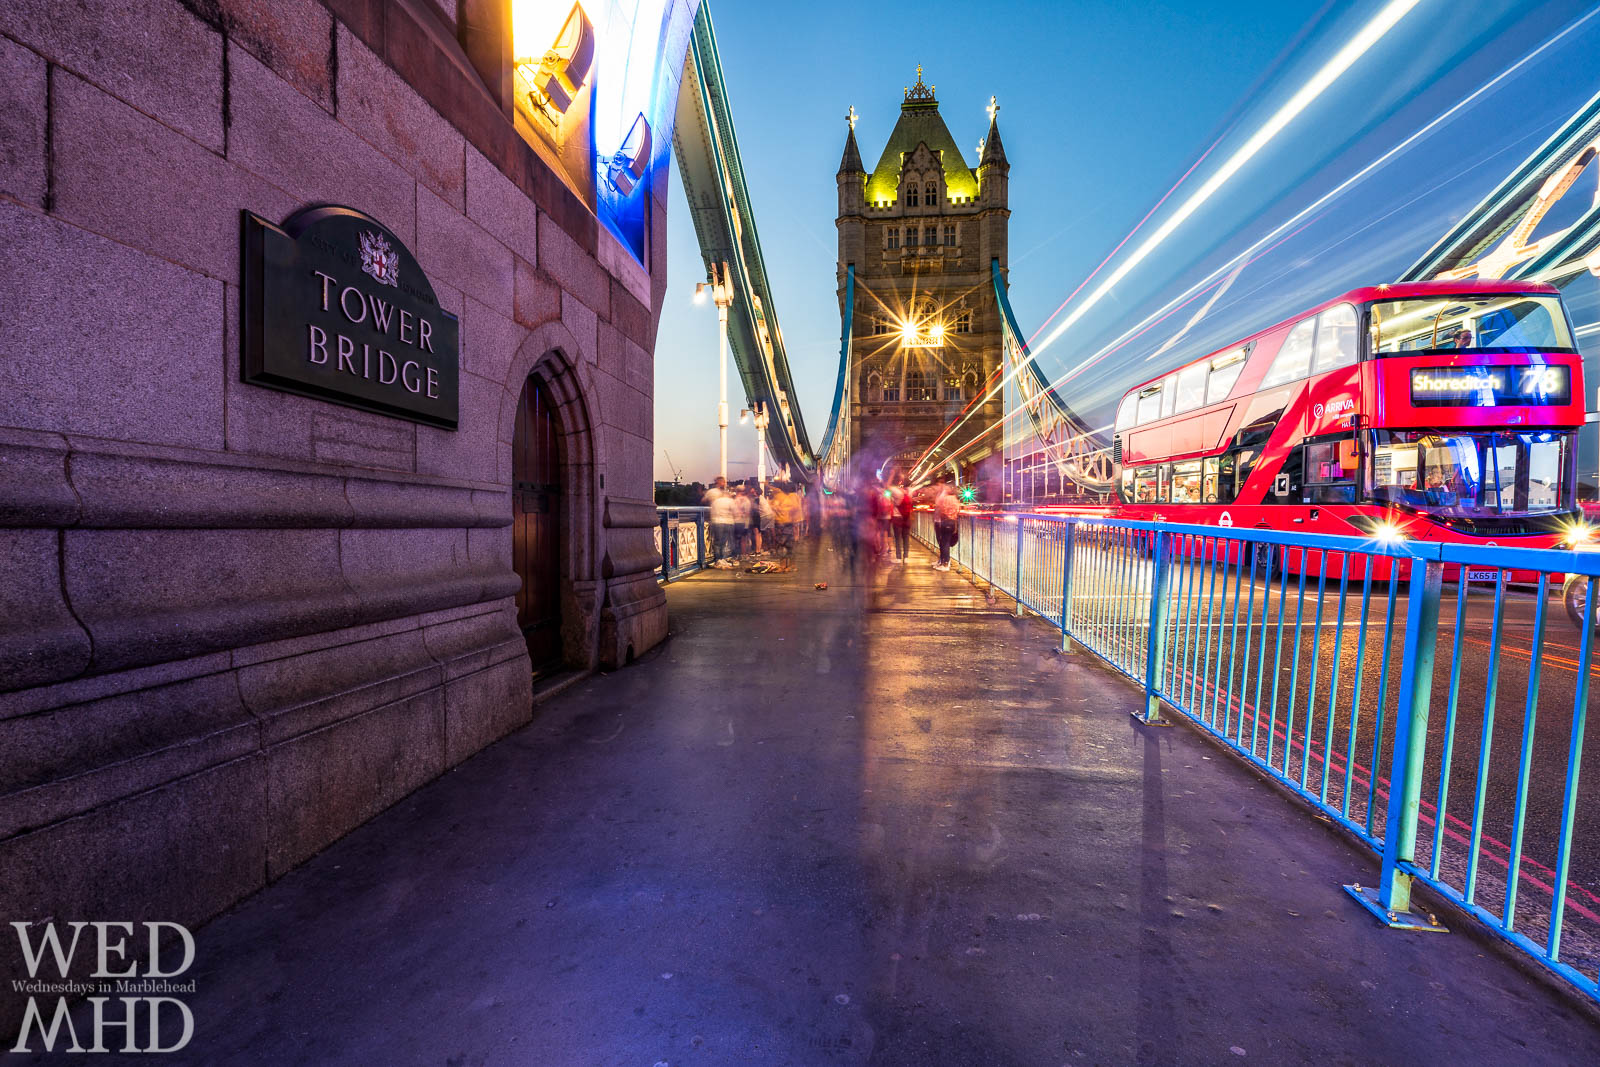 Tower Bridge is captured in a long exposure on a summer evening to highlight the traffic lights and a stopped red bus from Shoreditch